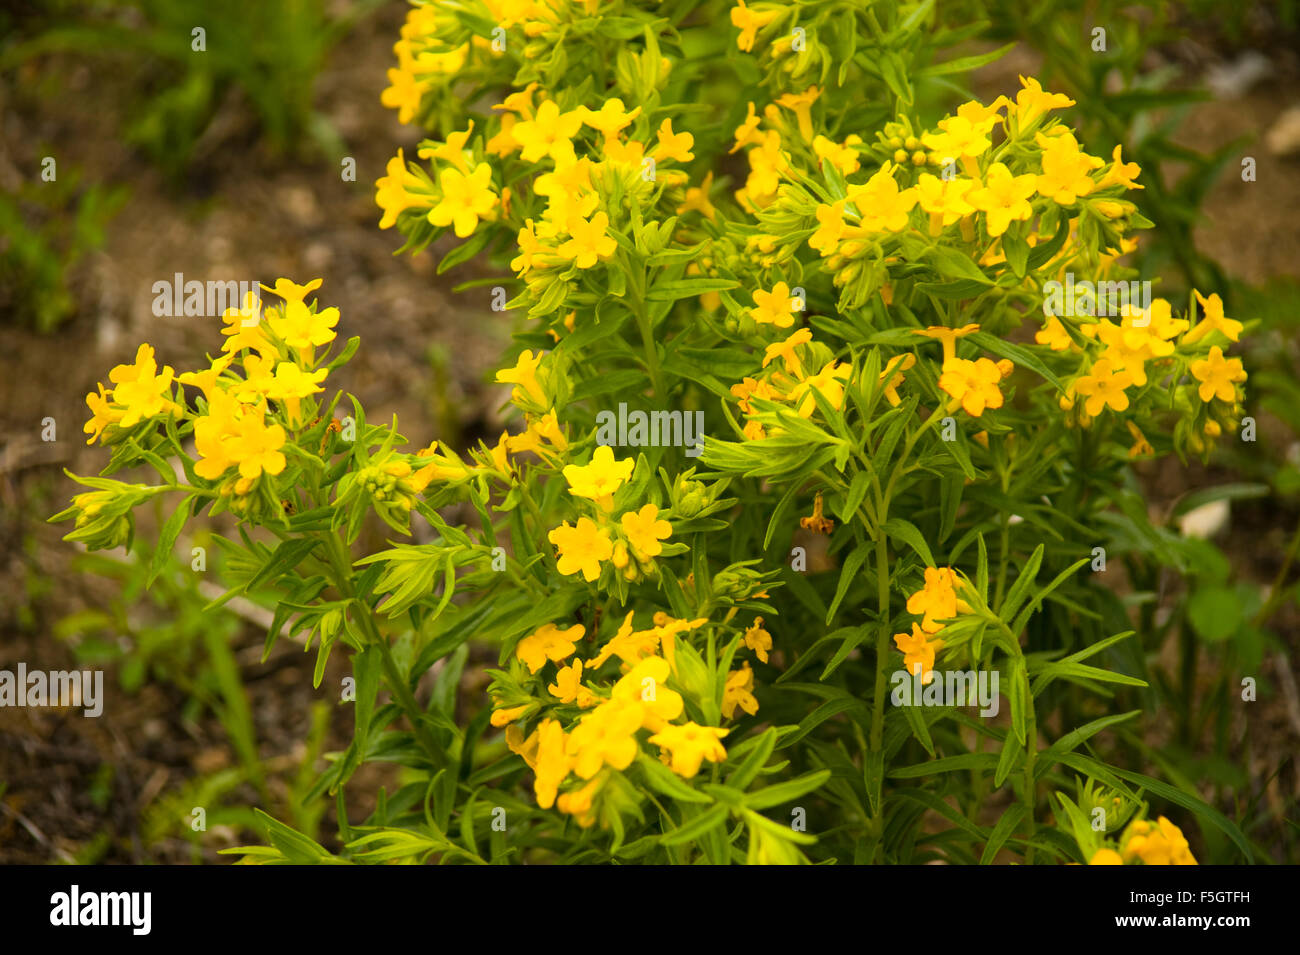 Yellow wildflowers in northern indiana forest stock photo 89495605 yellow wildflowers in northern indiana forest mightylinksfo